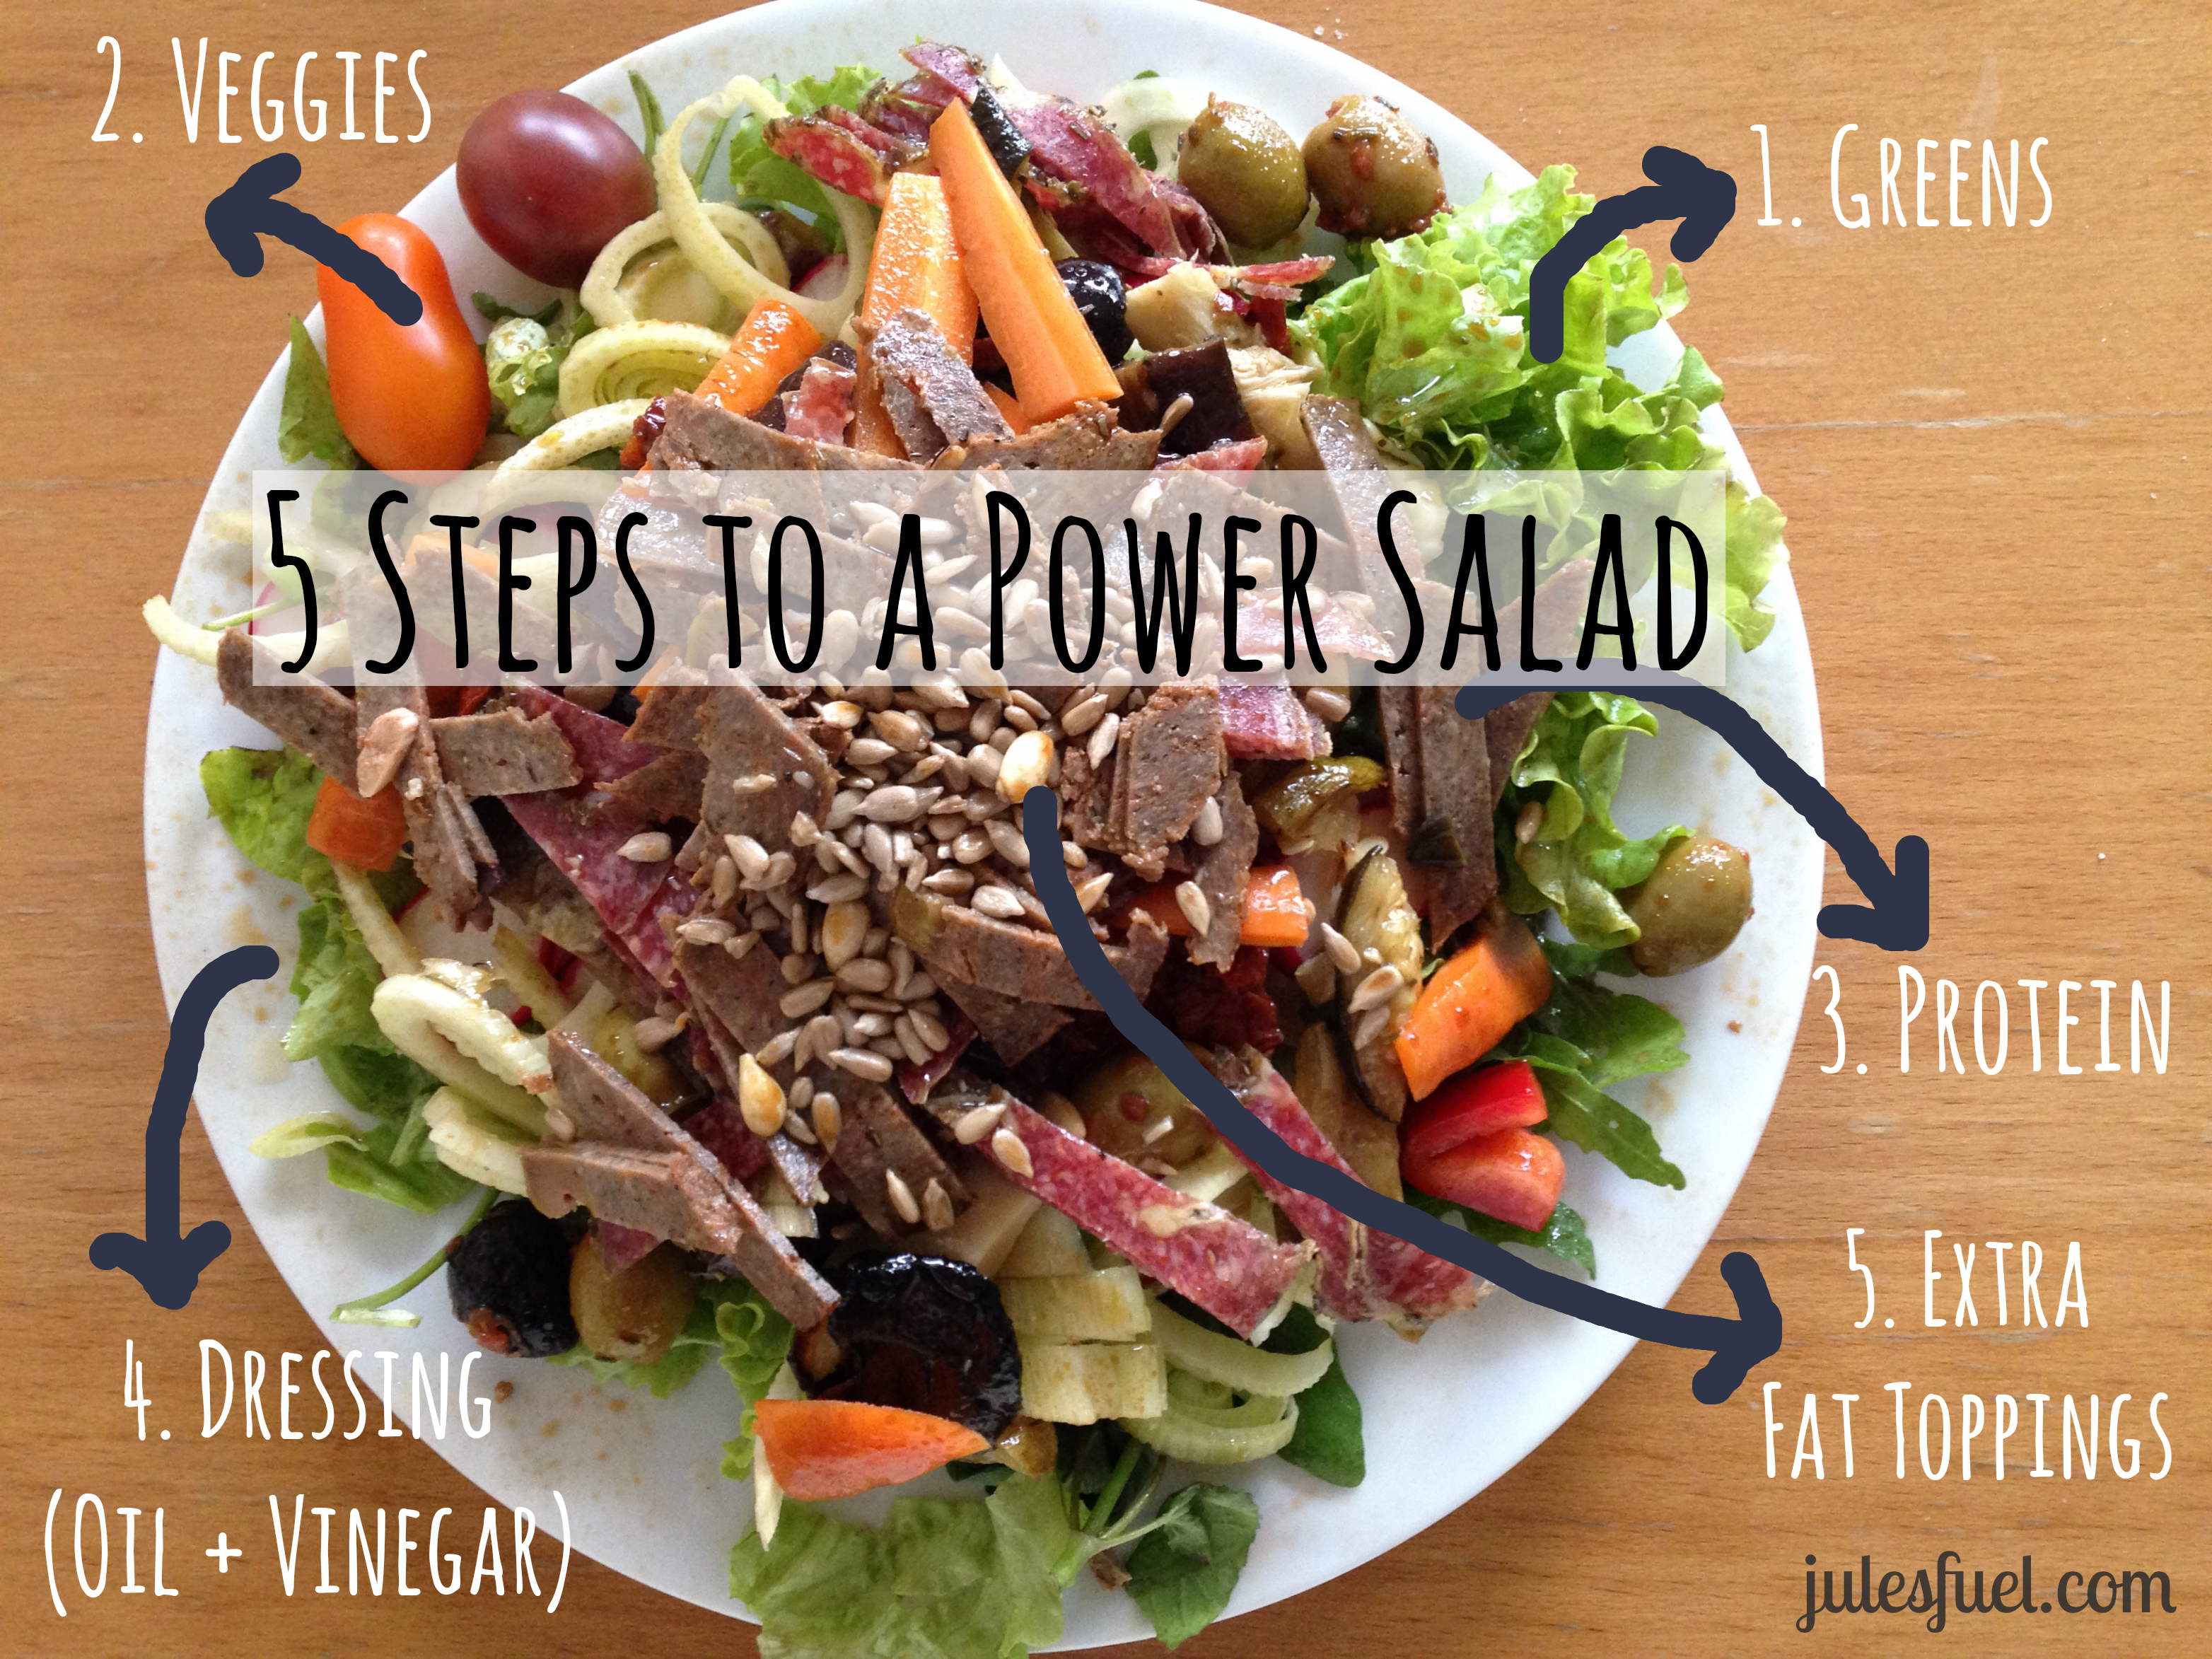 5 steps to power salad